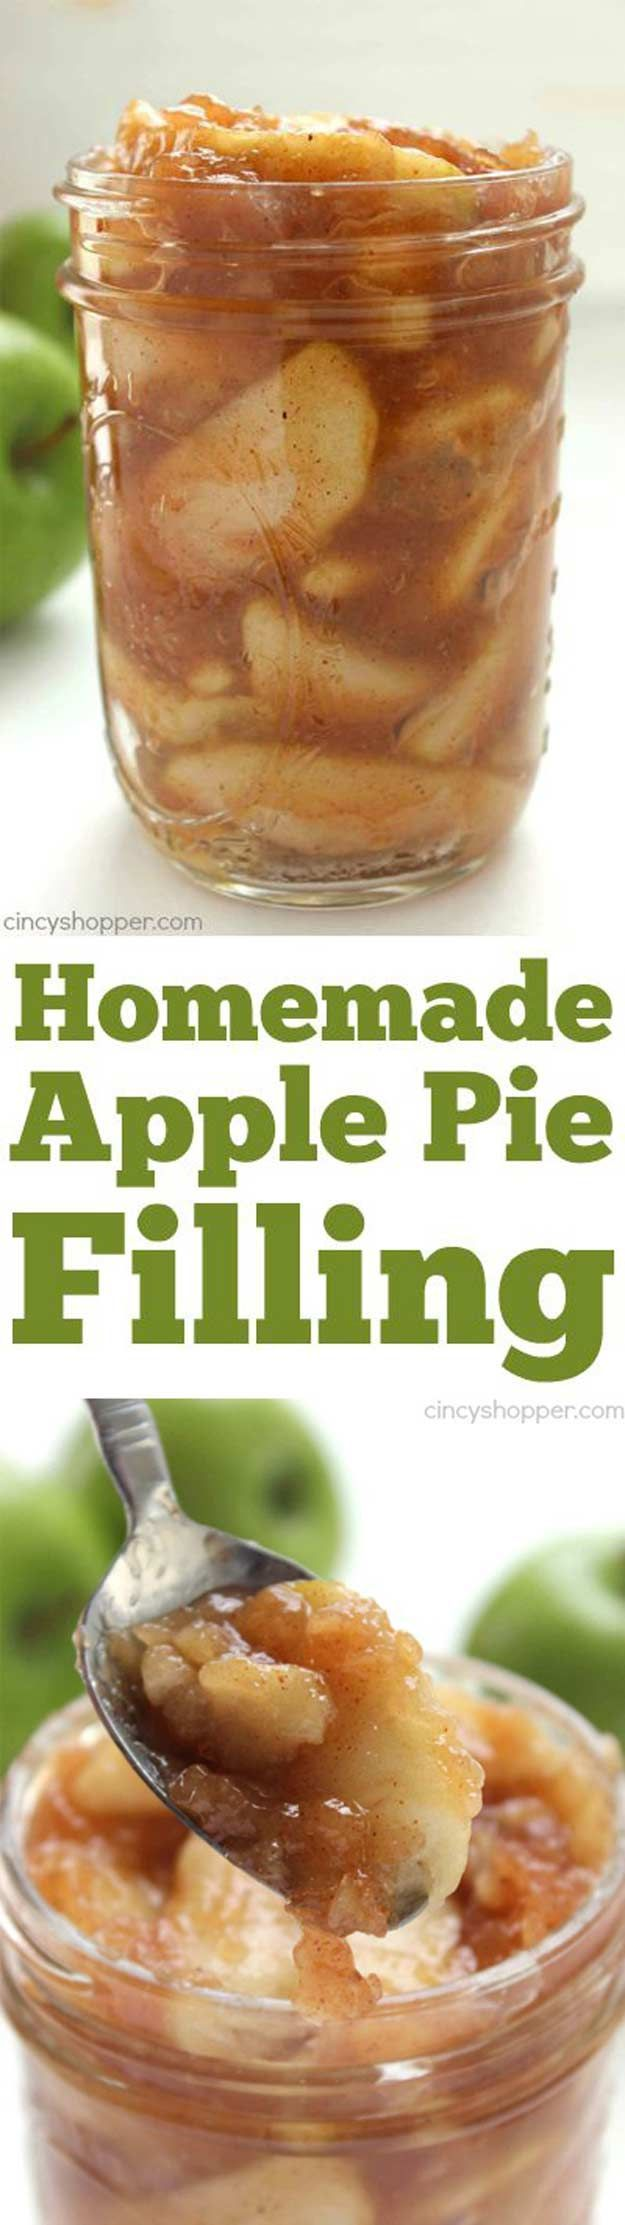 Homemade Apple Pie Filling | 10 Appetizing Apple Pie Recipe Ideas by Pioneer Settler at http://pioneersettler.com/apple-pie-recipe/